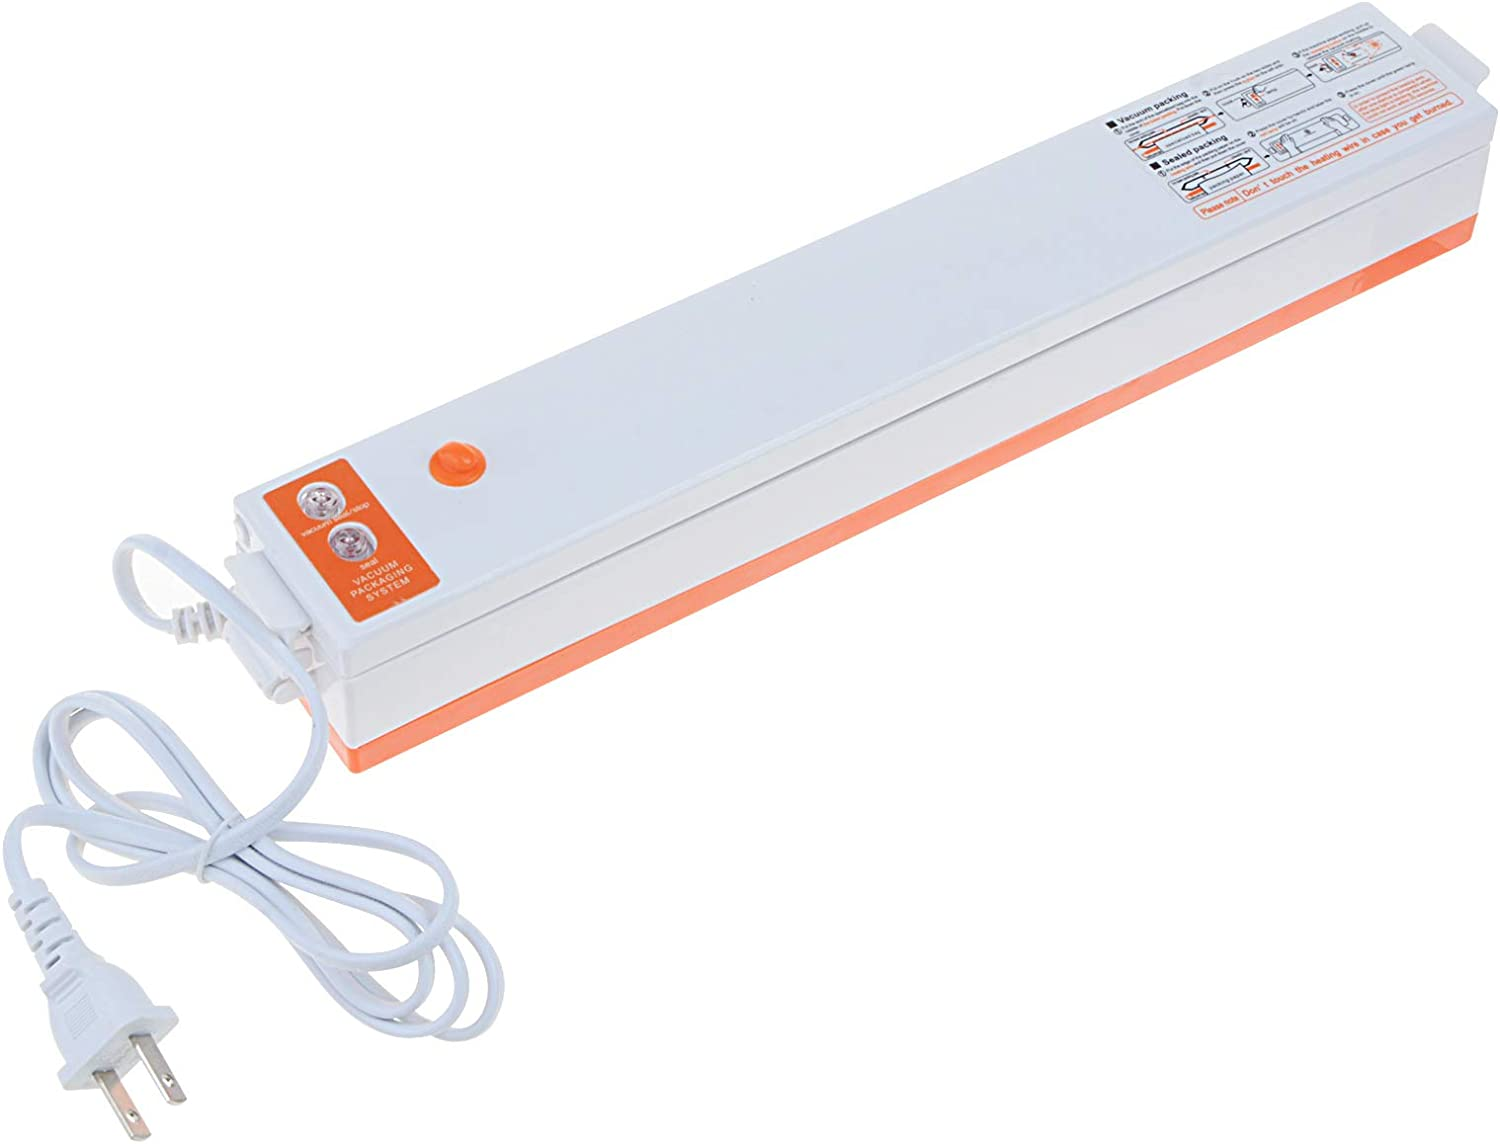 YXQ Vacuum Sealer Machine Automatic Food Sealer for Food Savers,Max Seal 11 inches(W),Dry Moist Food Modes,Includes 10 PCS Bags For Food Storage